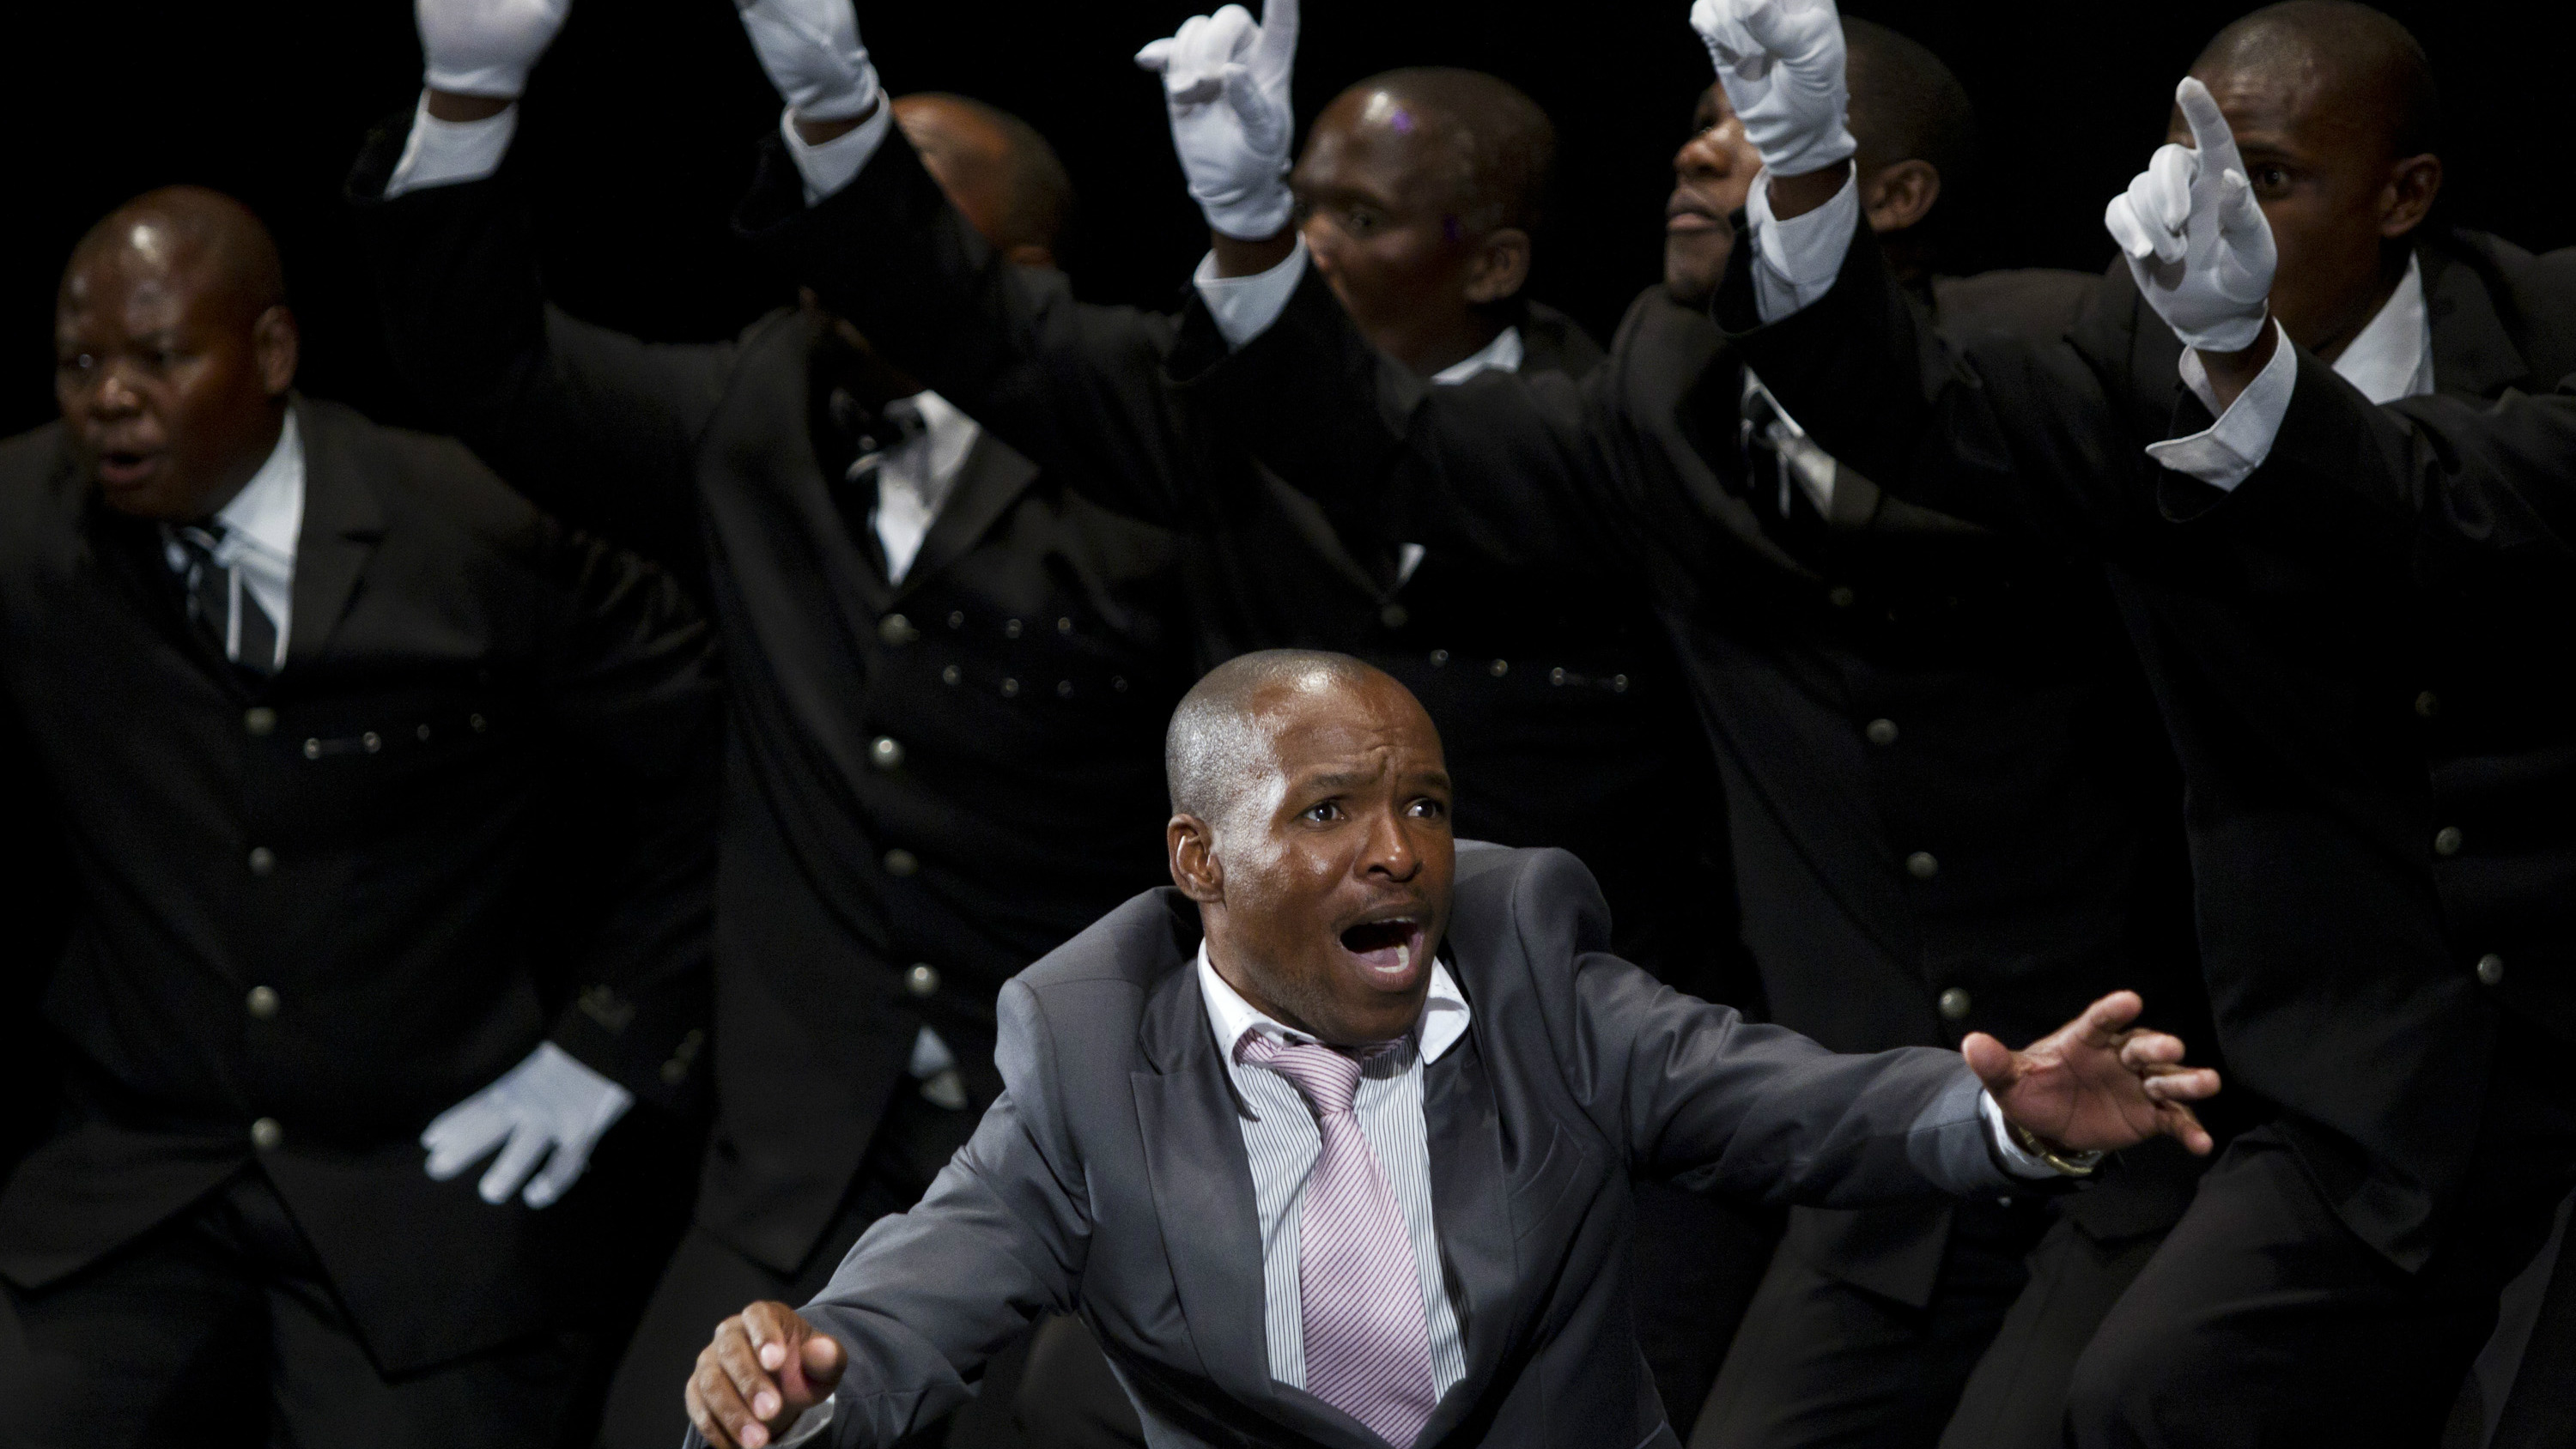 A traditional Isicathamiya group performs during a competition in Durban September 24, 2011. The Isicathamiya Festival held on South Africa's Heritage Day saw 111 groups competing in a genre made known worldwide by South African musical group Ladysmith Black Mambazo. Isicathamiya groups consist mainly of men who sing acapella and perform tightly choreographed dance moves which keep the singers on their toes. REUTERS/Rogan Ward (SOUTH AFRICA - Tags: SOCIETY ENTERTAINMENT TPX IMAGES OF THE DAY)